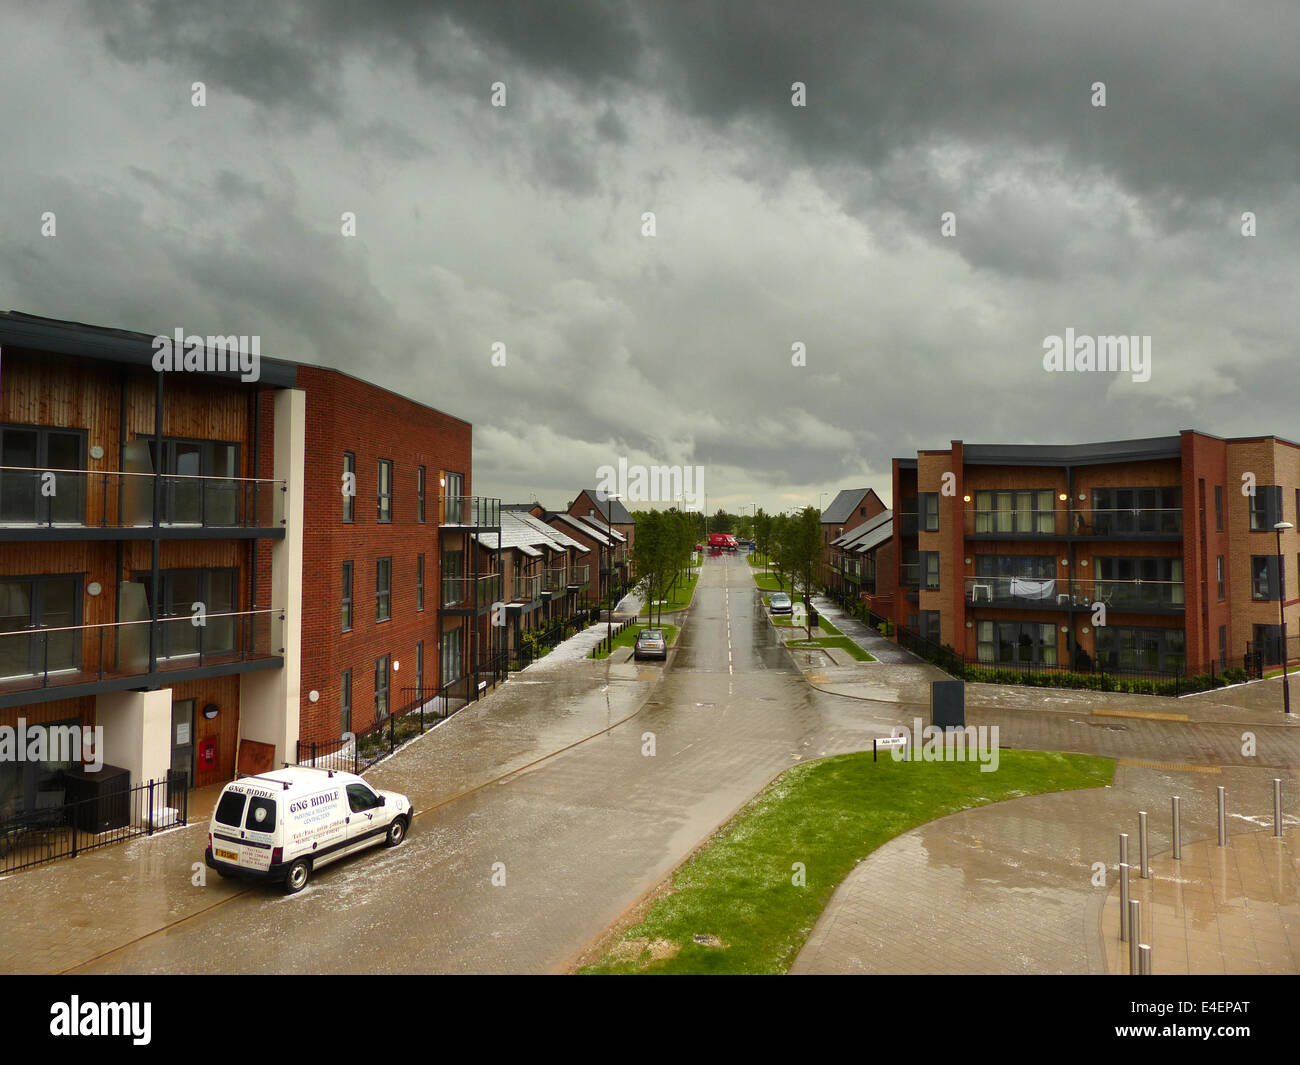 A view of a deserted housing estate during a storm with wet pavements and a very dark sky - Stock Image